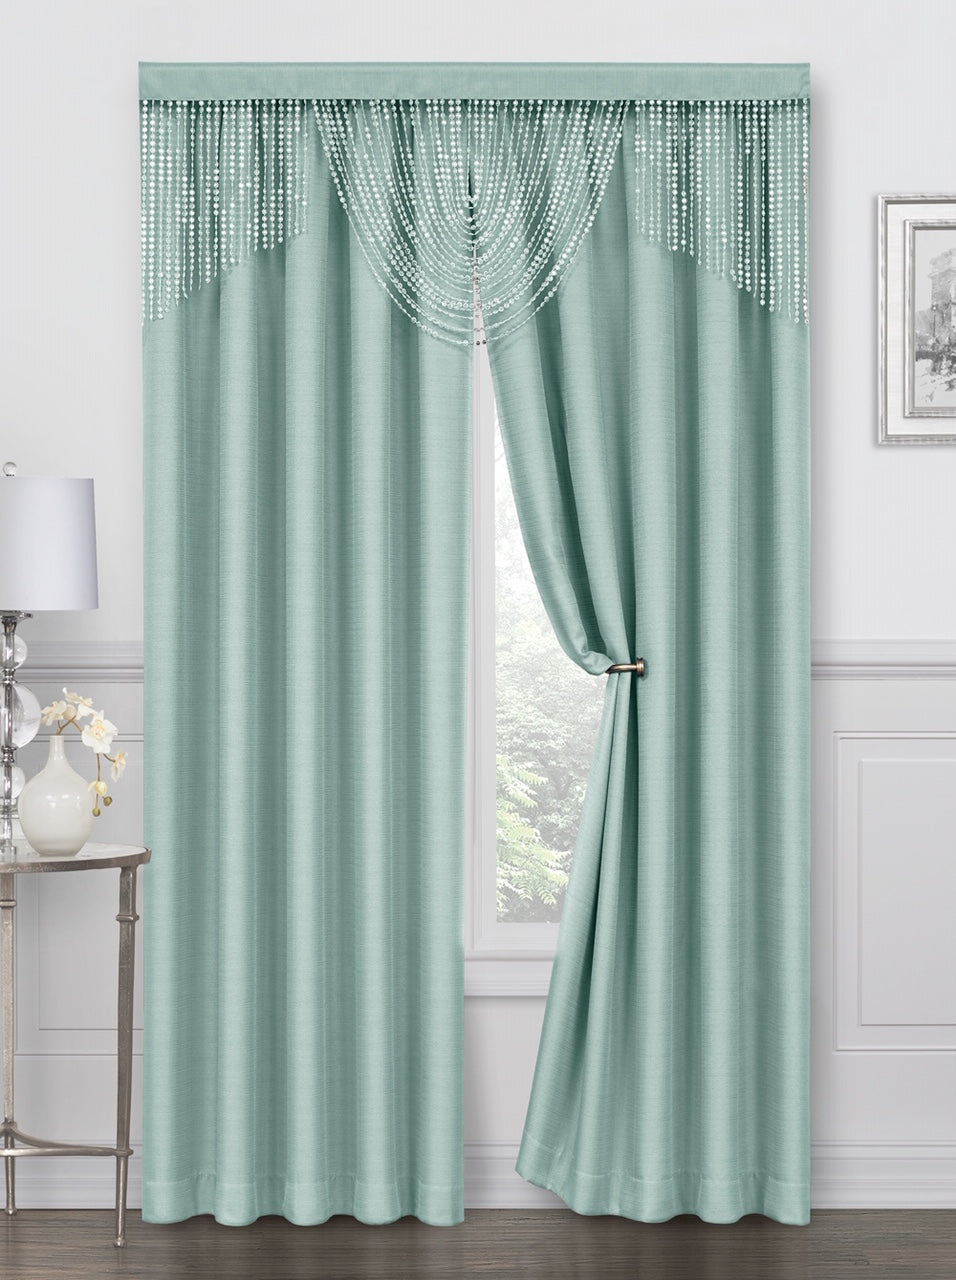 Meadow Rod Pocket Curtain Panel - 052x084   Aqua  C44701- Marburn Curtains